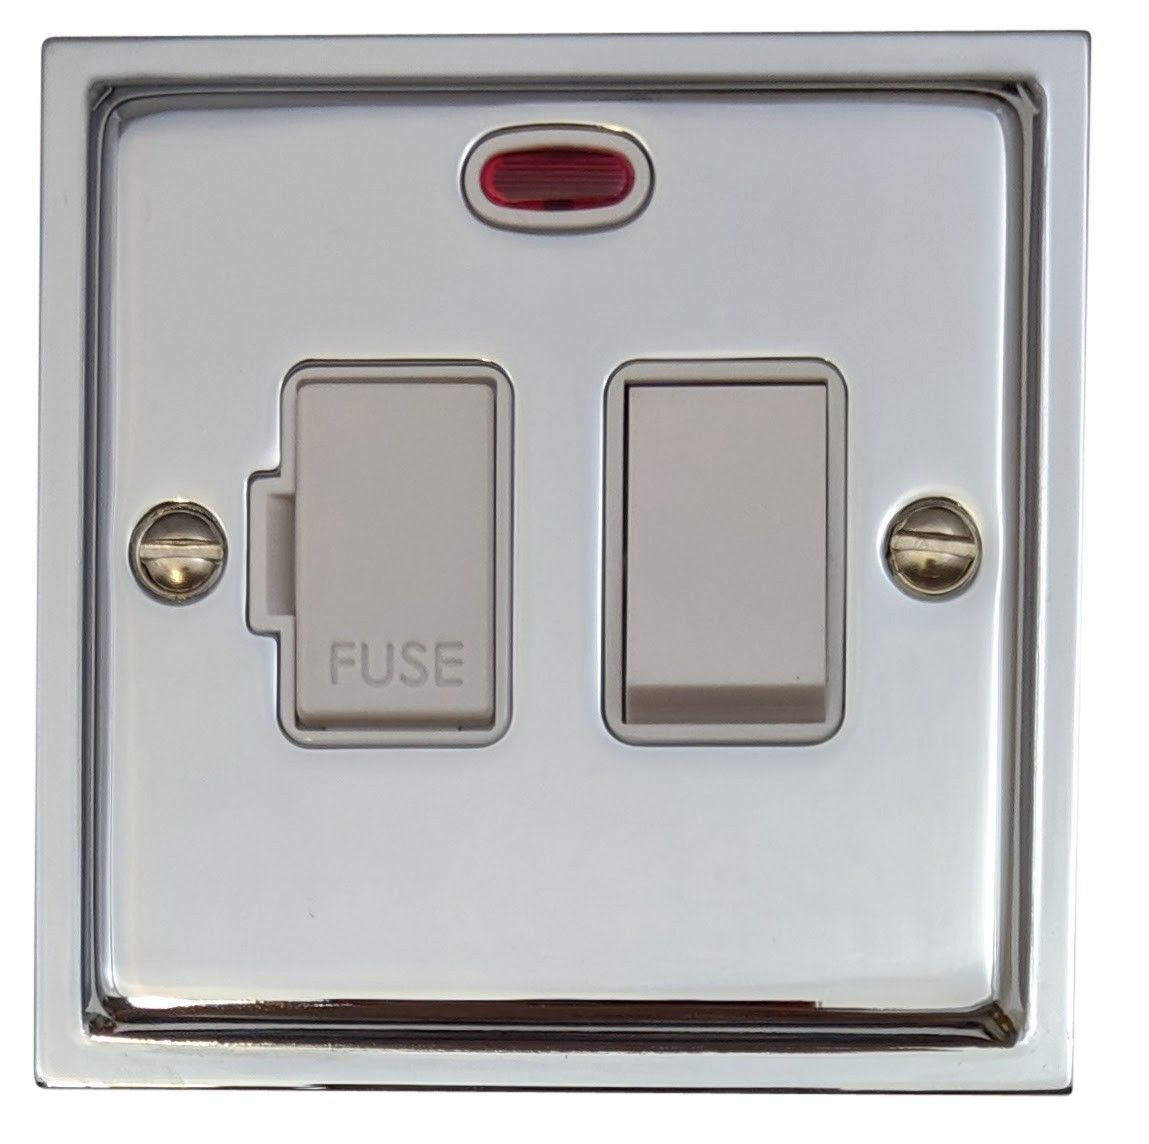 G&H HC27W Highline Plate Polished Chrome 1 Gang Fused Spur 13A Switched & Neon